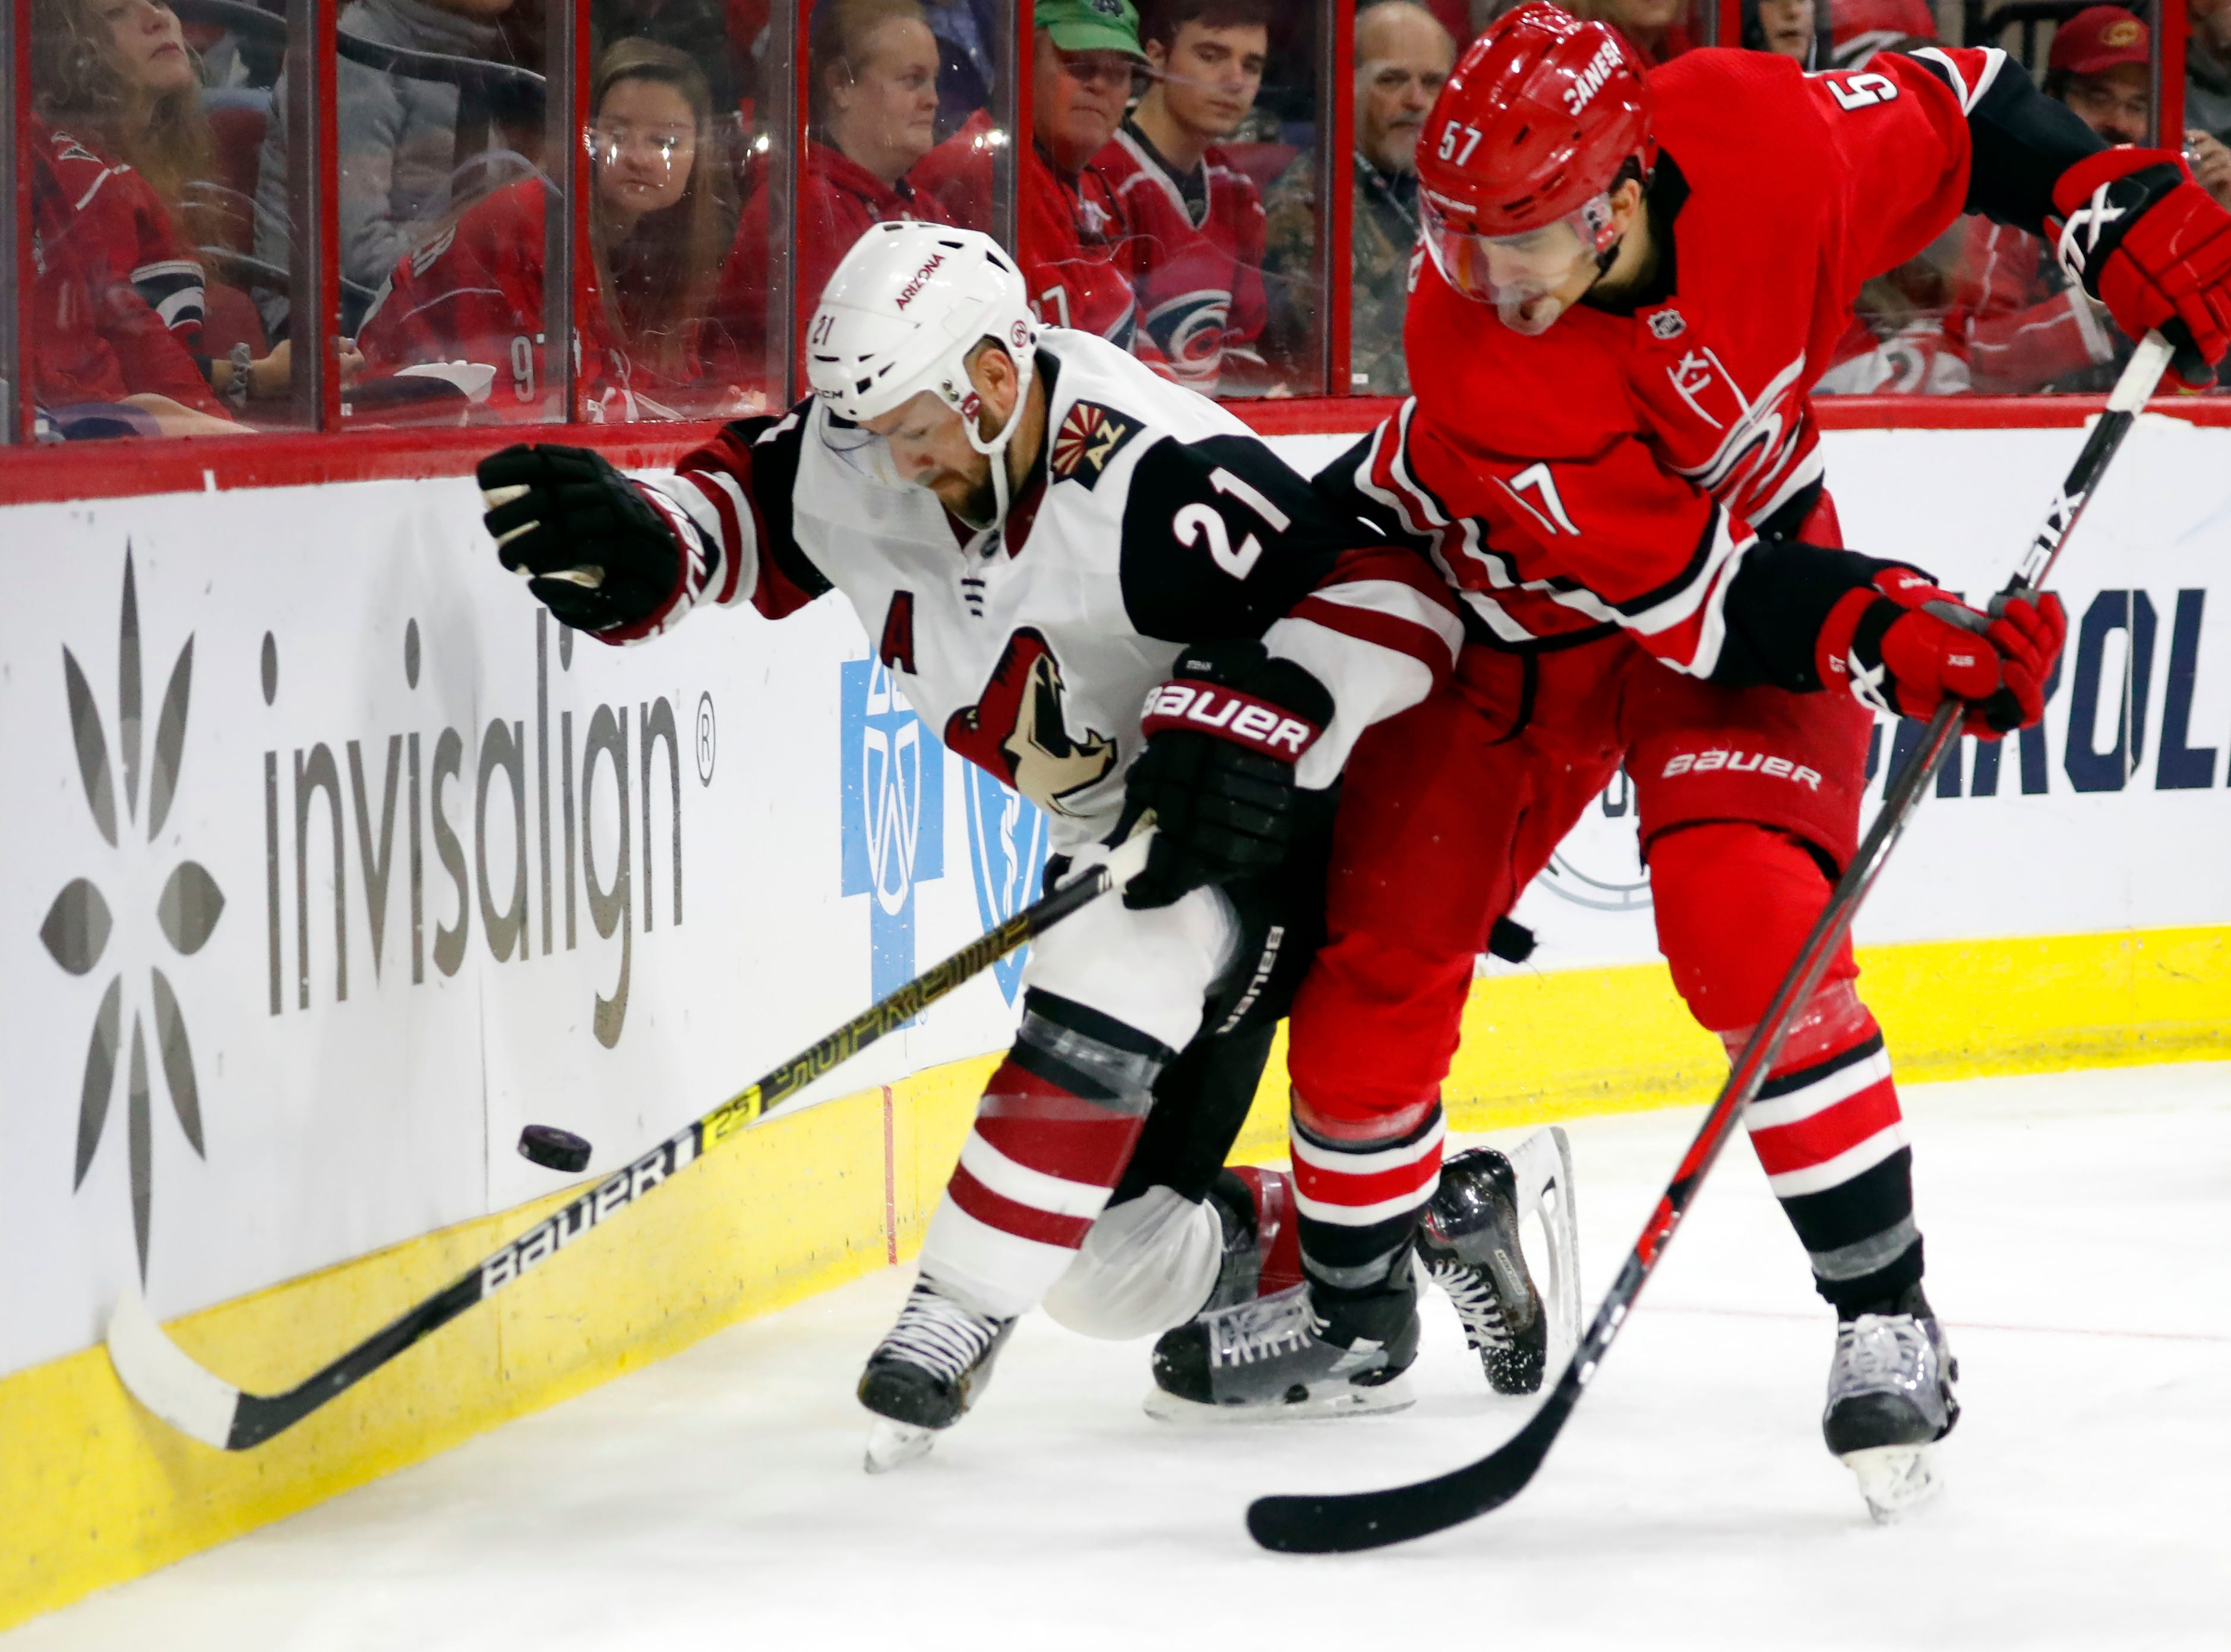 Carolina Hurricanes' Trevor van Riemsdyk (57) battles with Arizona Coyotes' Derek Stepan (21) during the second period of an NHL hockey game, Sunday, Dec. 16, 2018, in Raleigh, N.C.